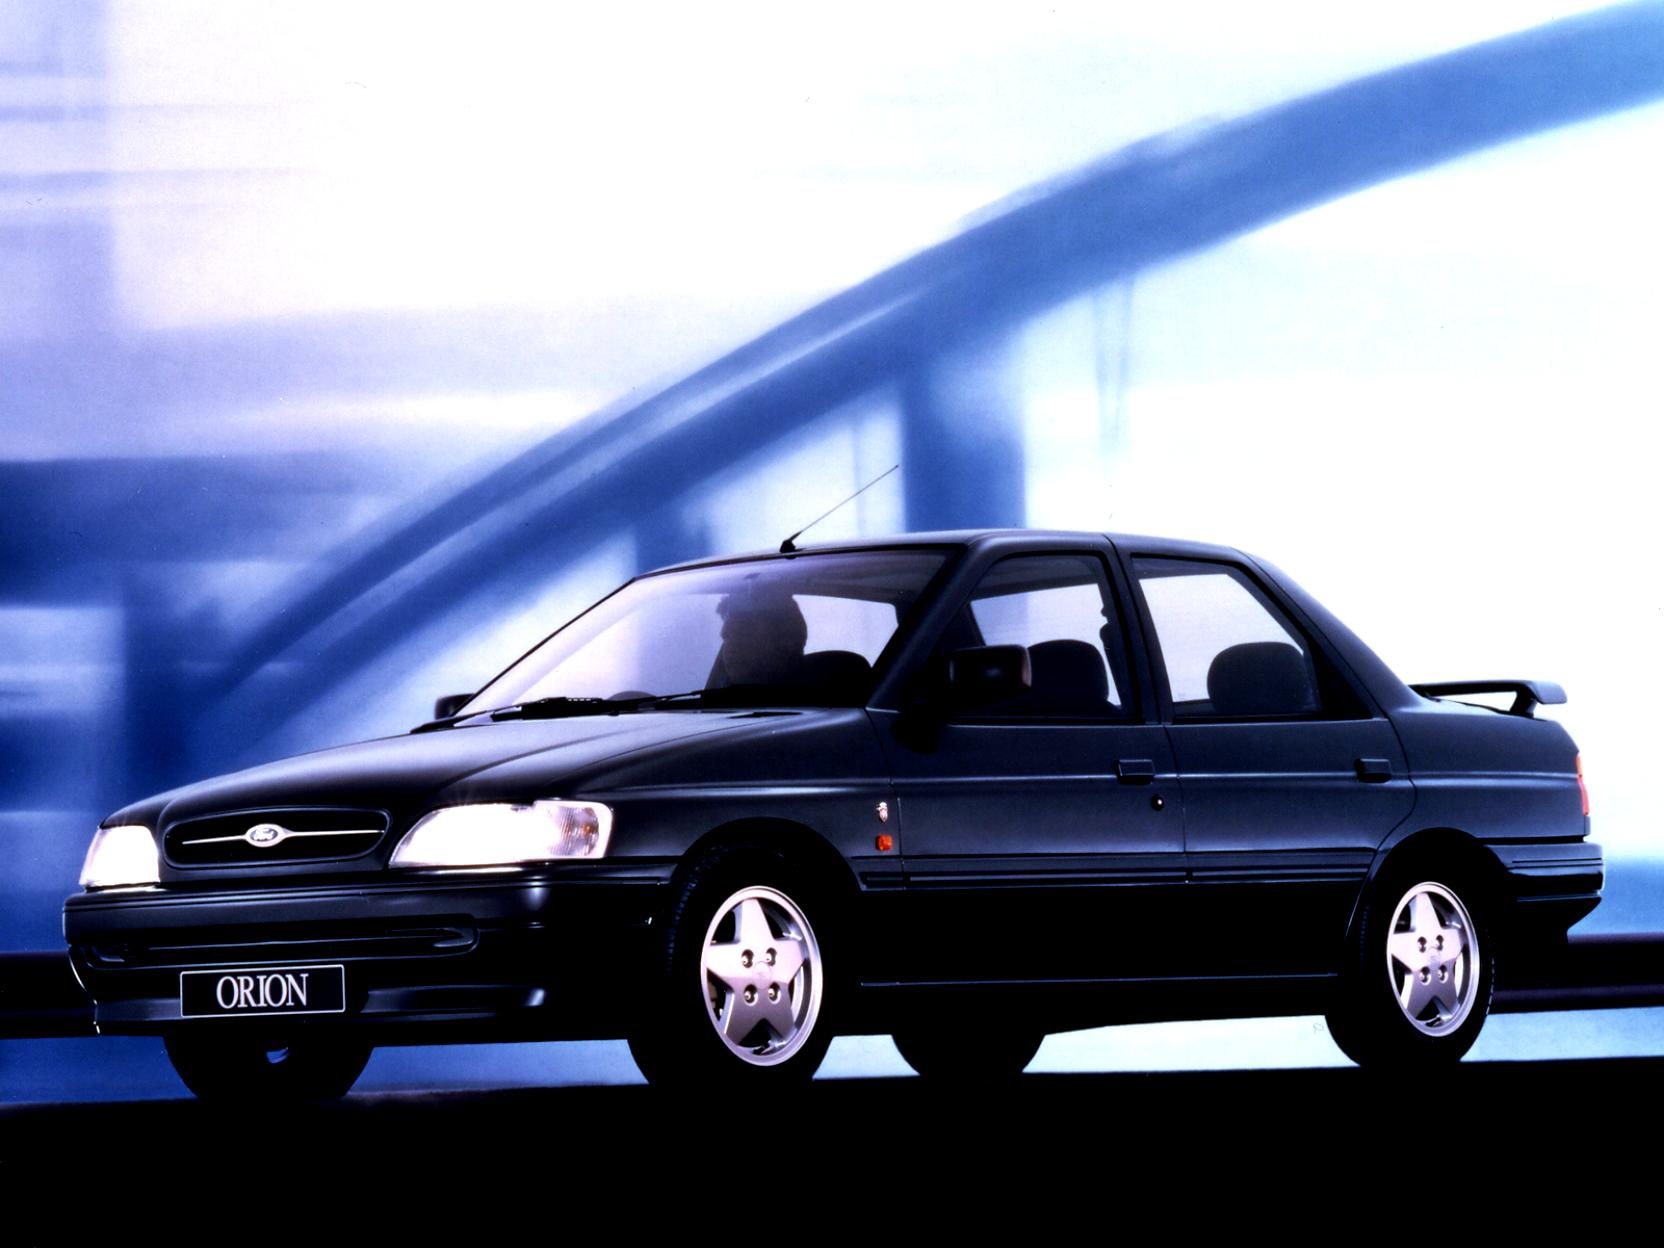 Ford Orion 1990 #44